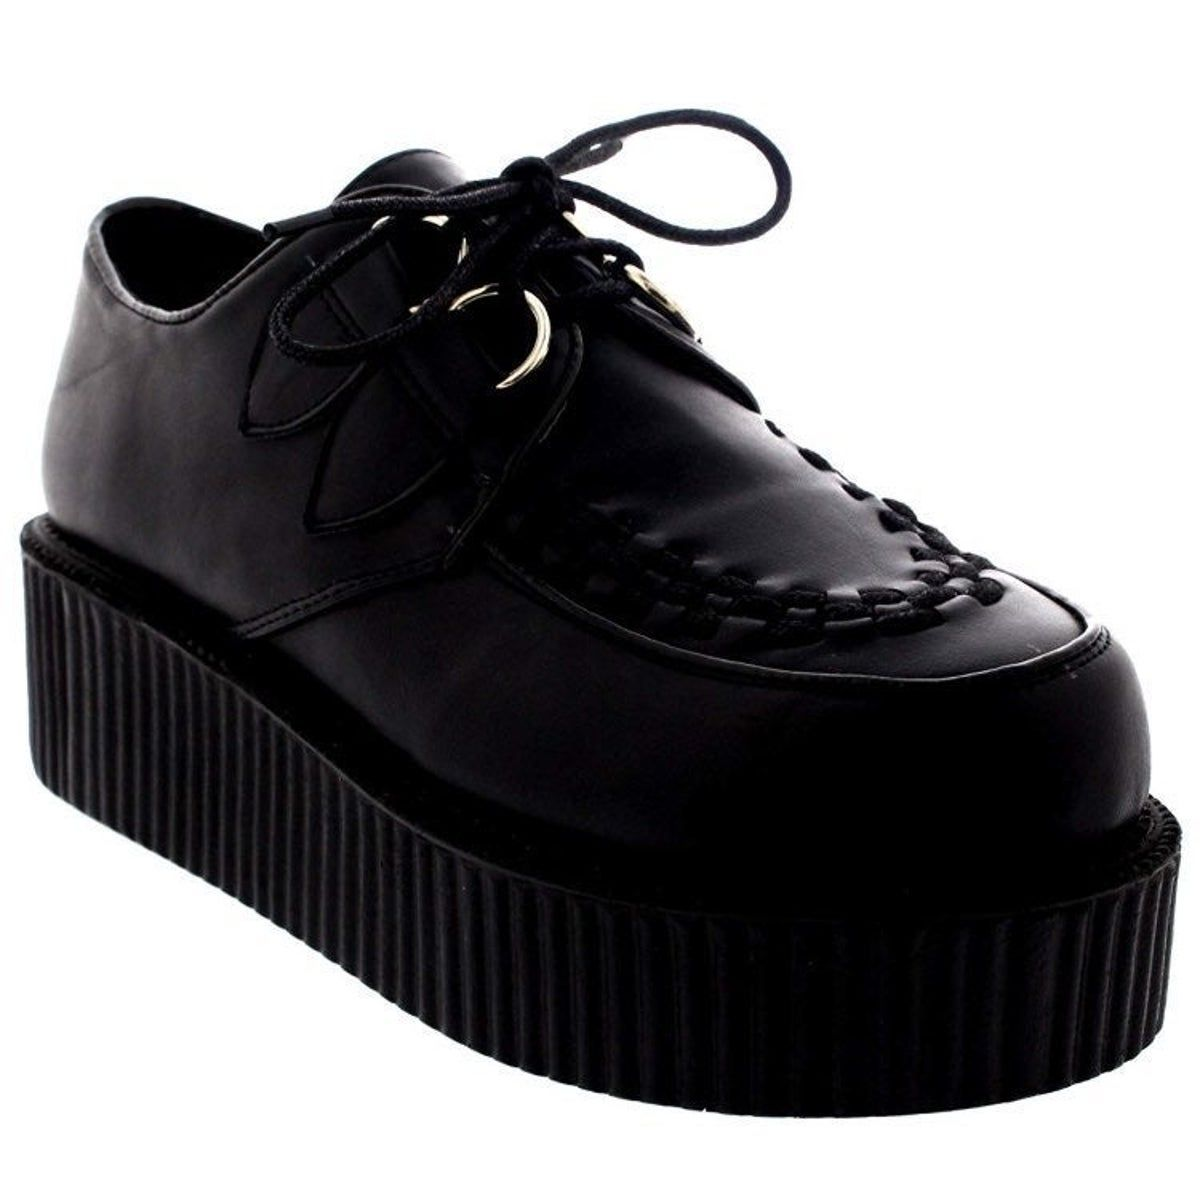 Leather Double Platform Creepers Shoe